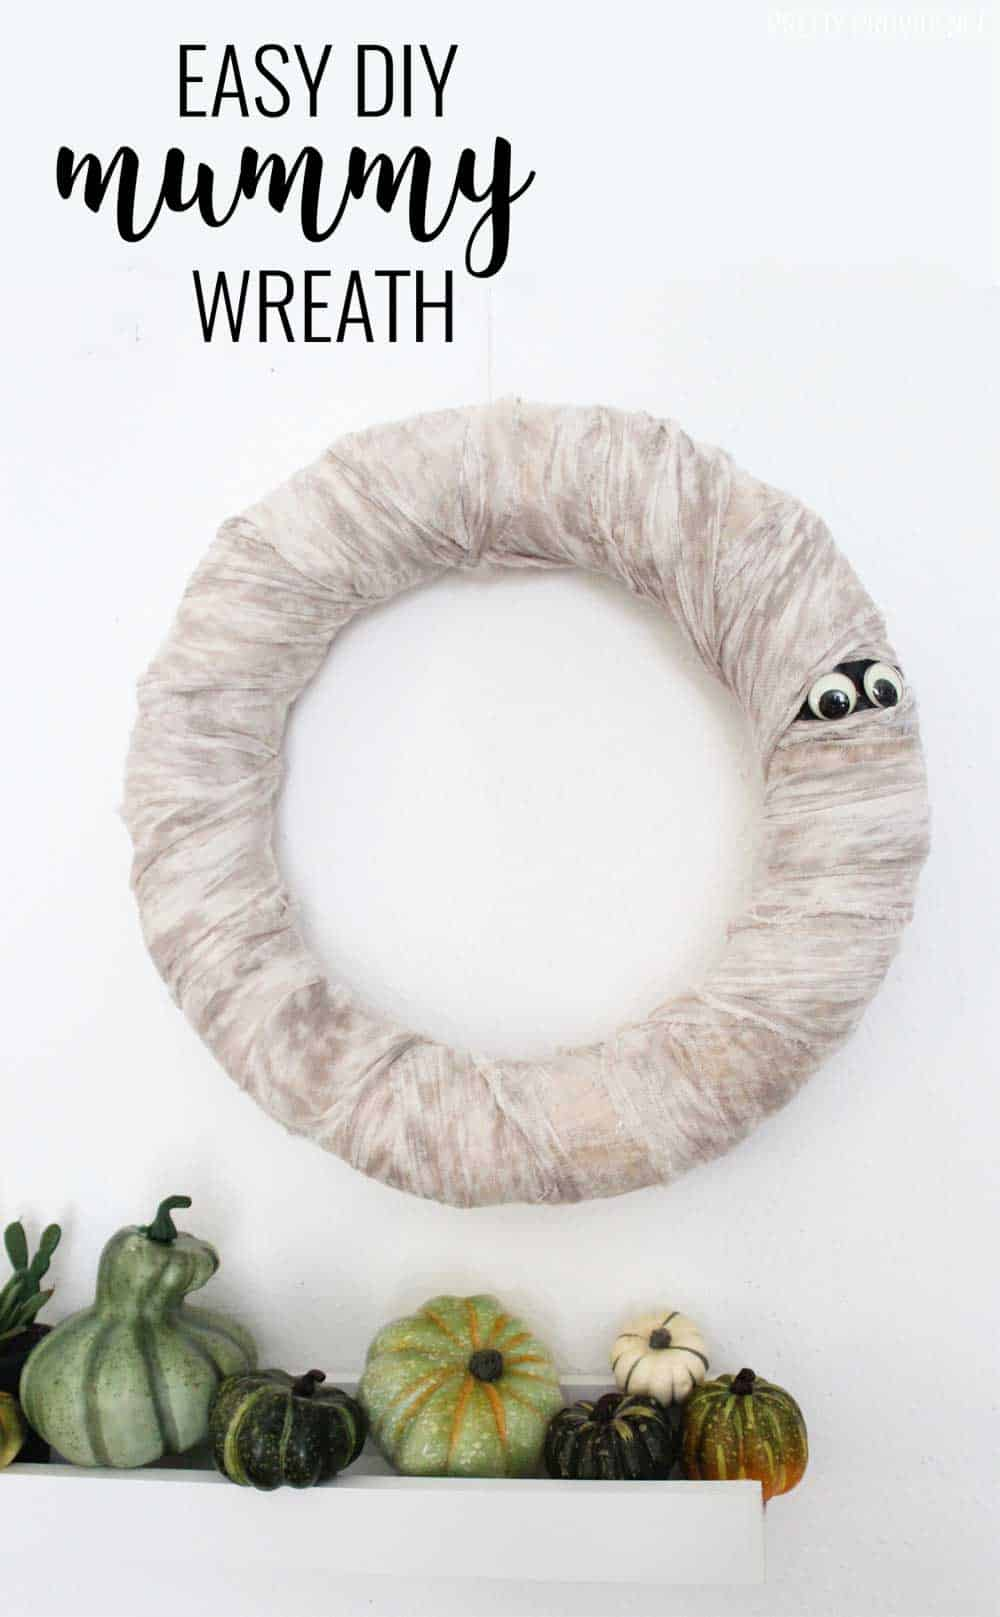 Halloween Wreath that looks like a mummy - wreath wrapped in cheese cloth with googly eyes peeking out.